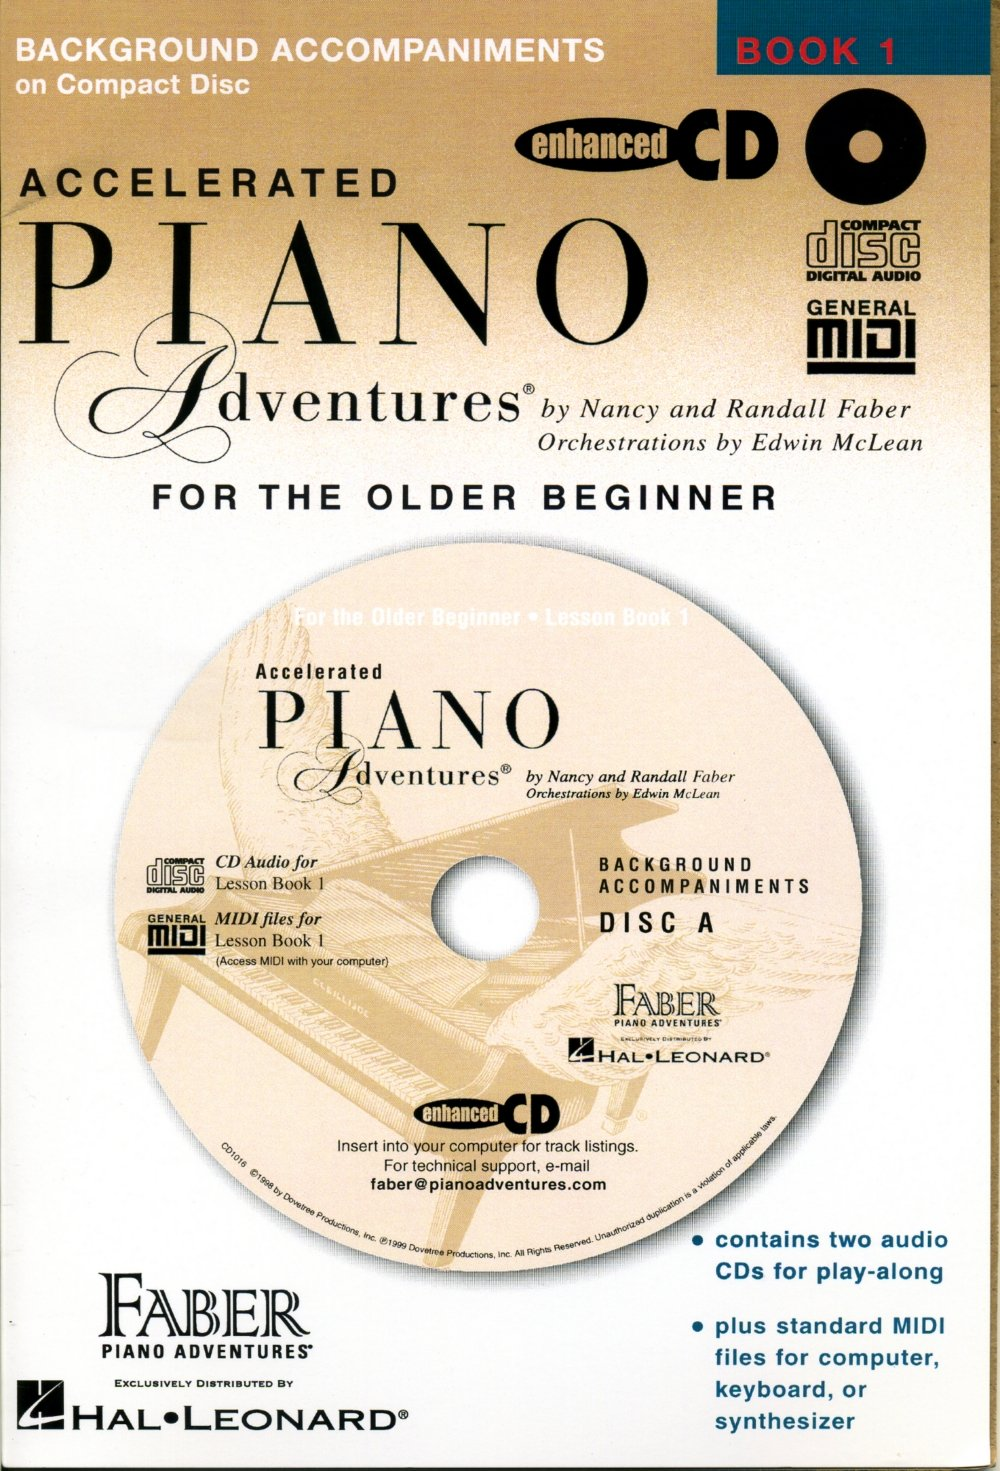 Accelerated Piano Adventures for the Older Beginner Lesson Book 1 2-CD Set by Faber Piano Adventures